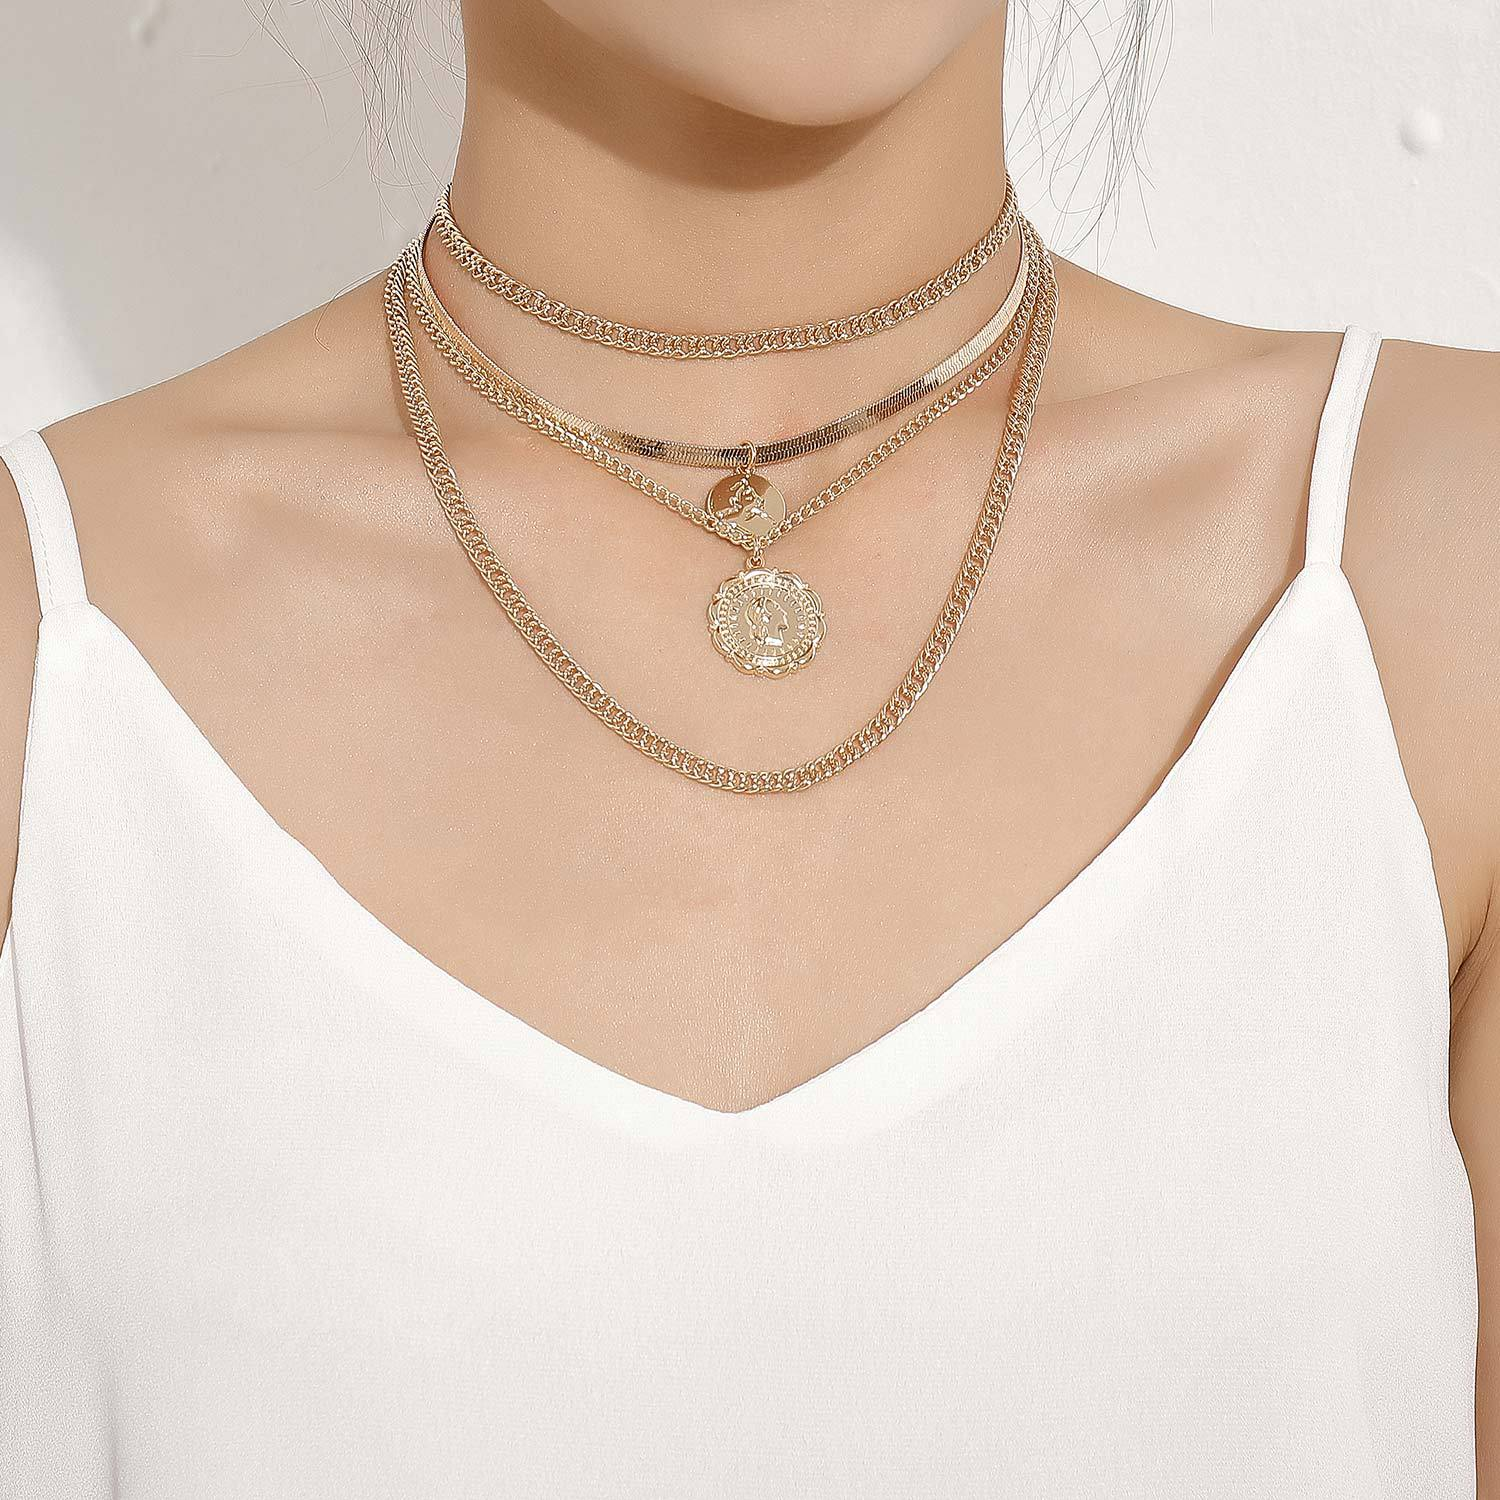 Alloy Round Pendant Necklace for Women Gold Silver Color Snake Chain Short Necklaces Female Clavicle Chains 2020 Fashion Jewelry